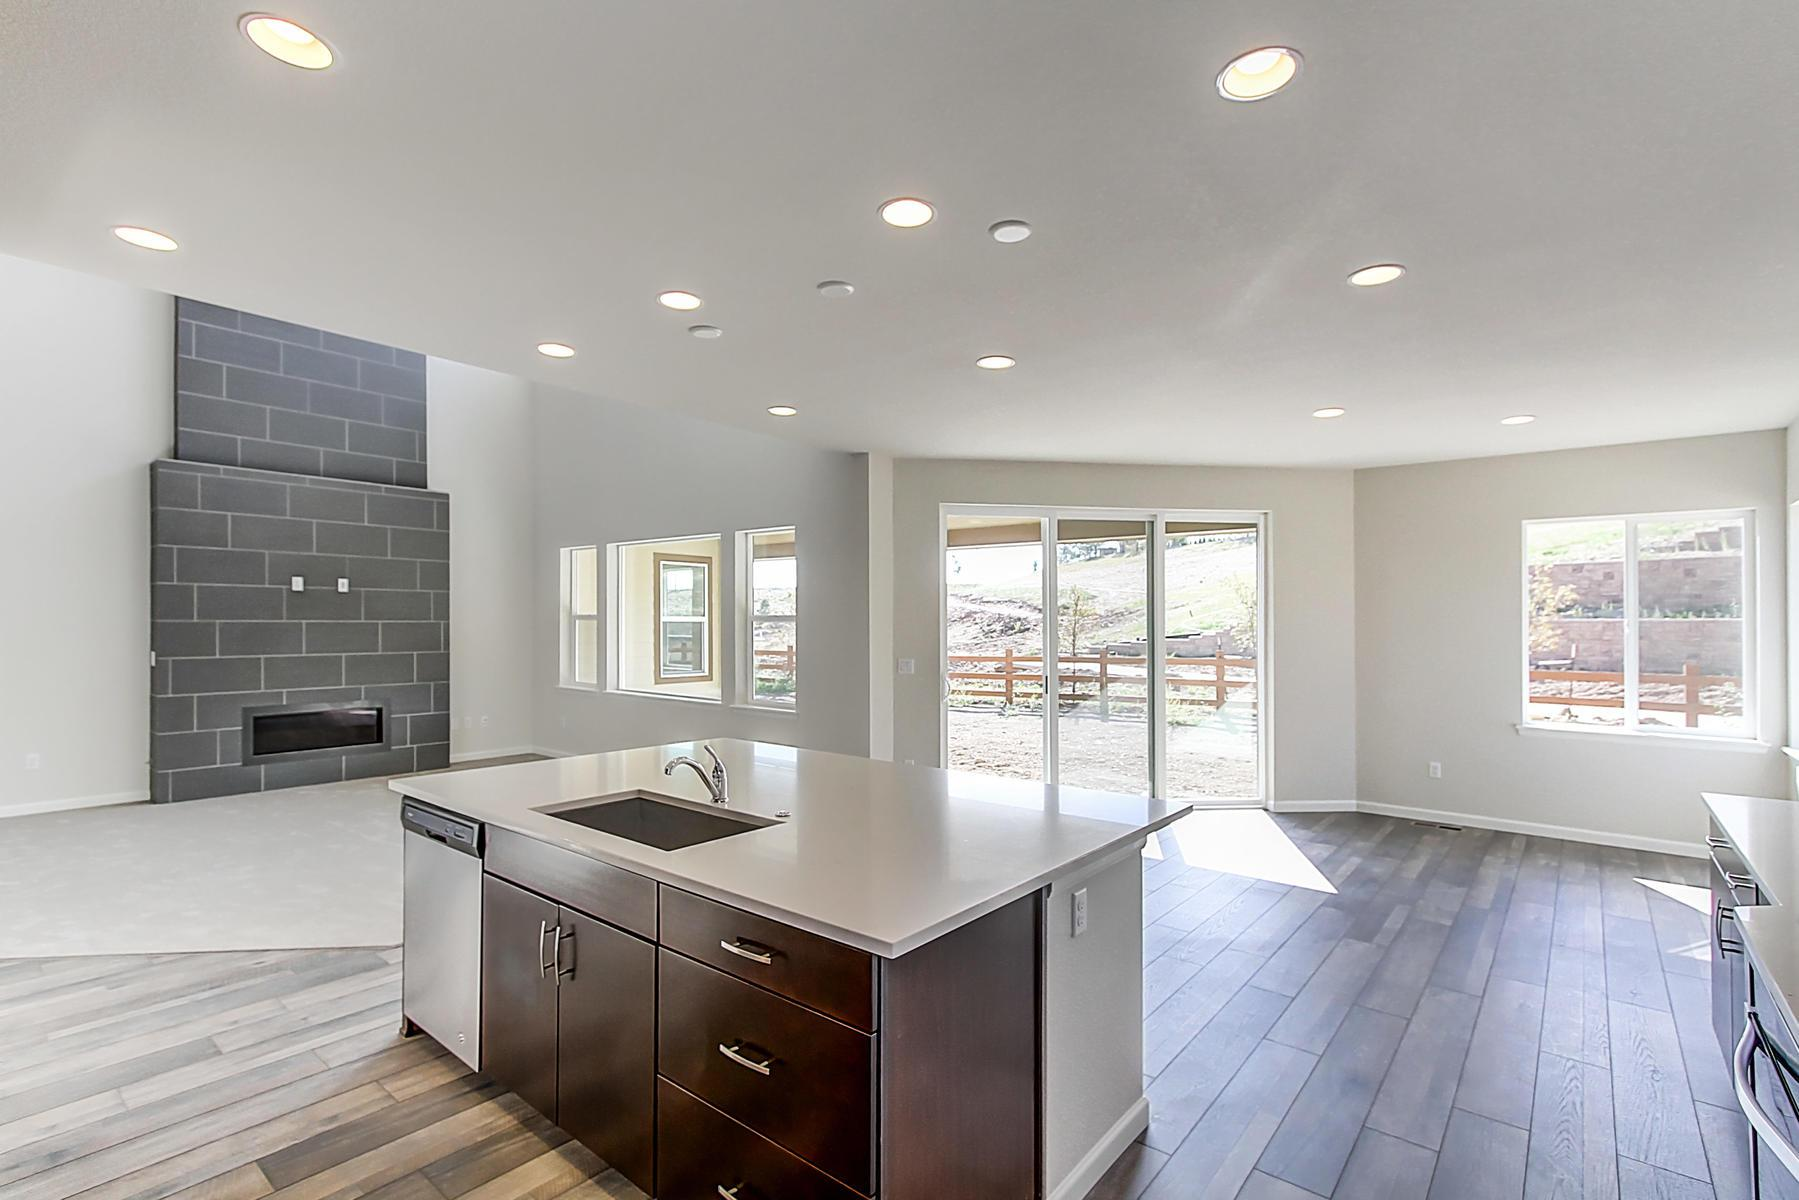 Additional photo for property listing at Residence 5005 18214 W 92nd Ln Arvada, Colorado 80007 United States